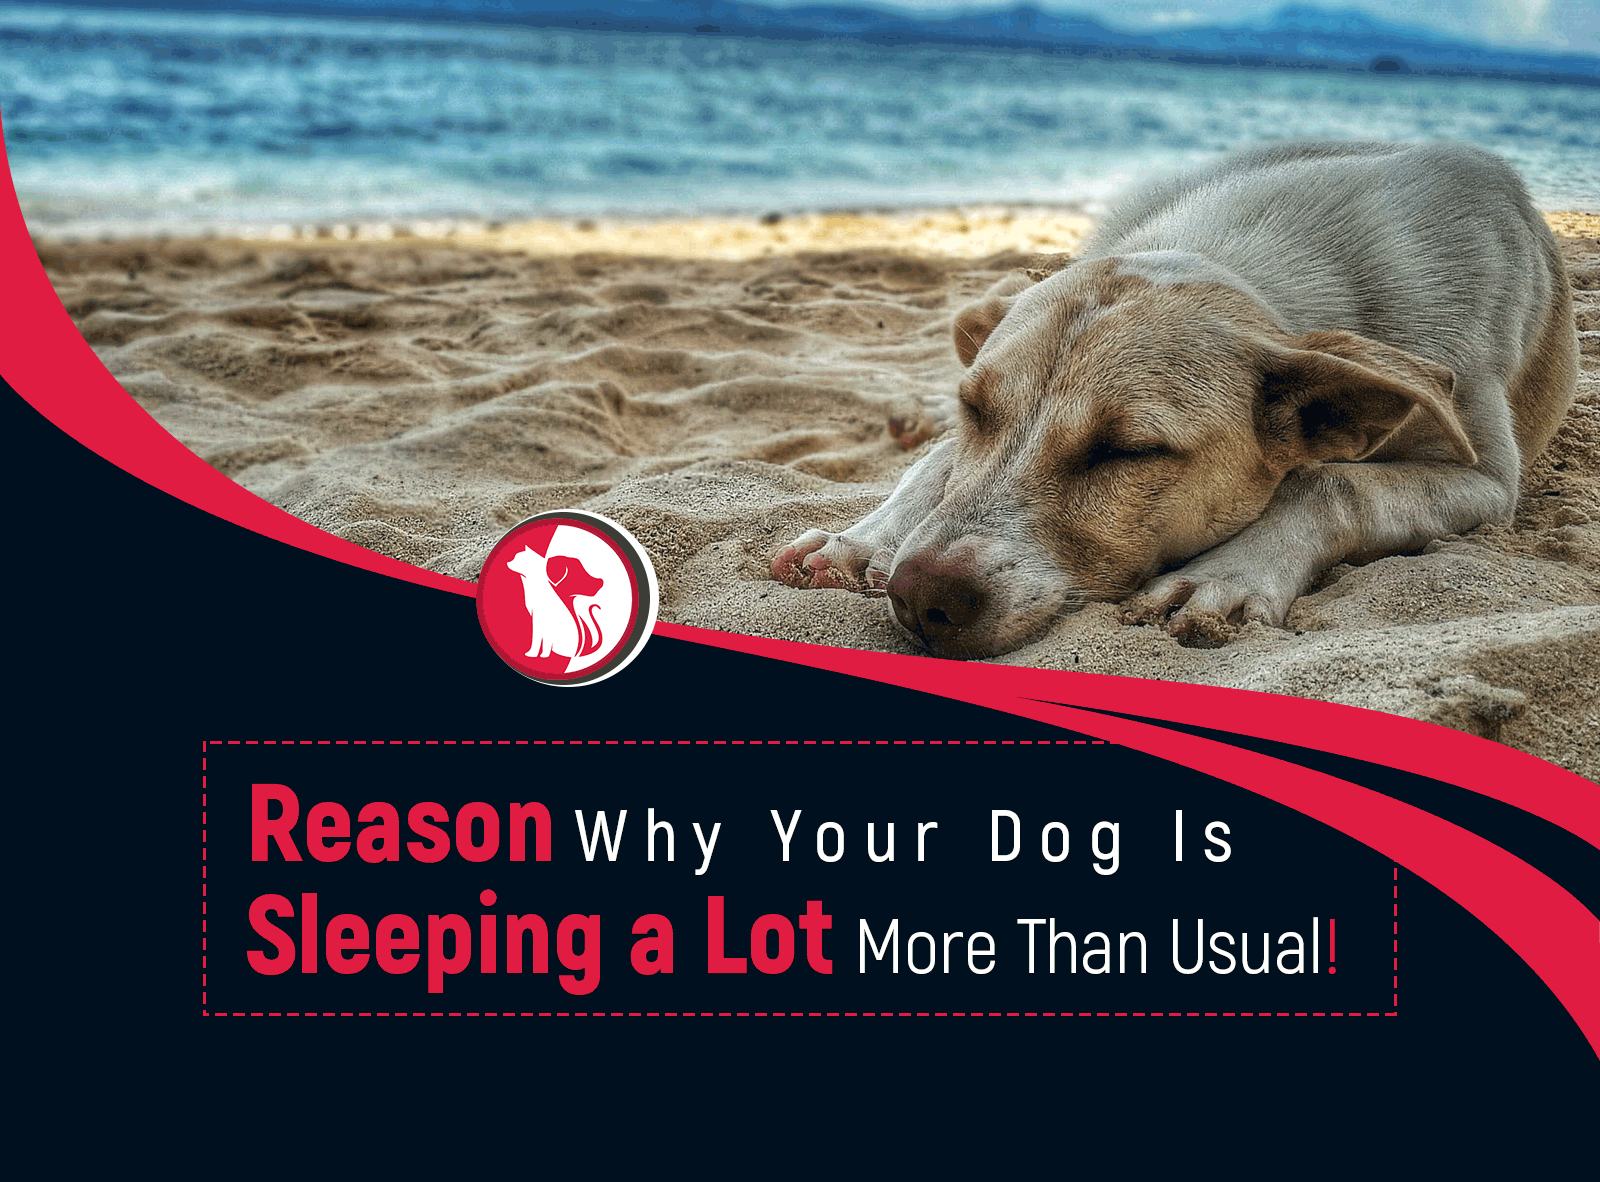 Top 10 Reasons Why Your Dog Is Sleeping a Lot More Than Usual